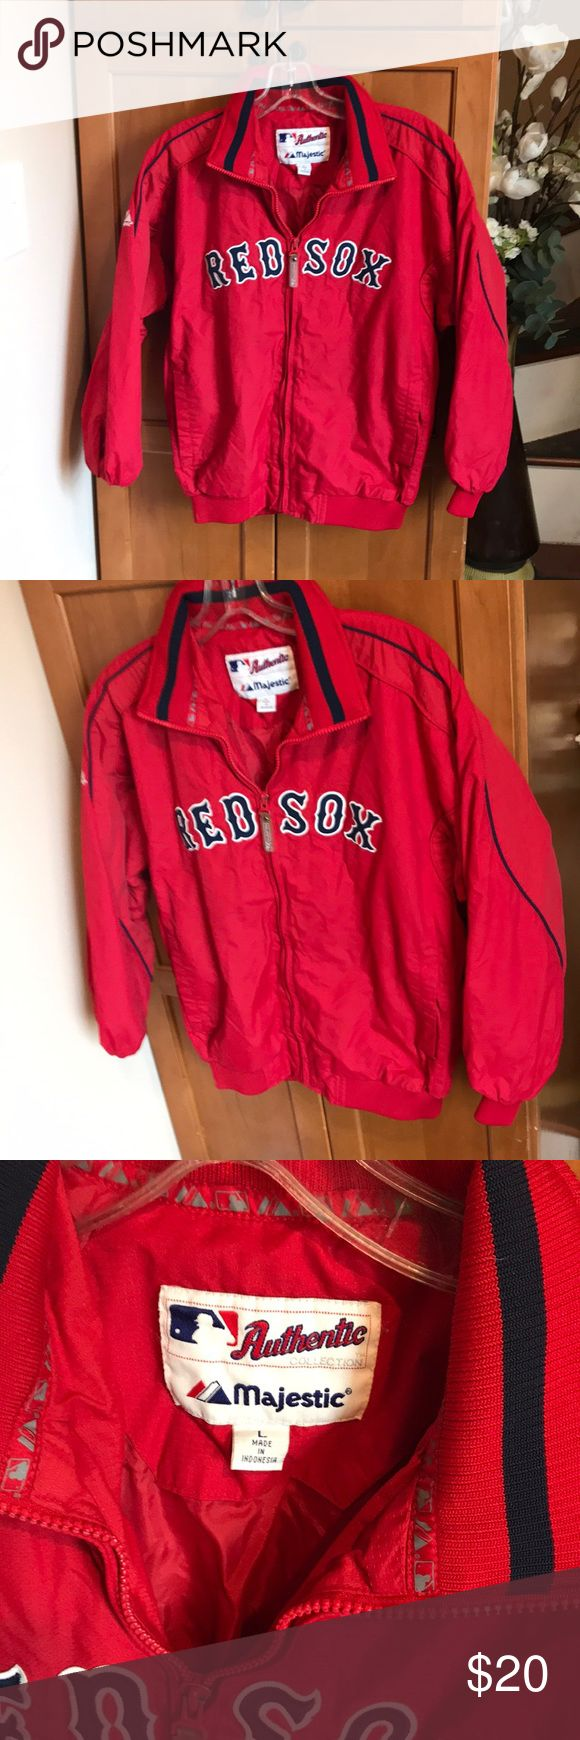 Like new Boys Red Sox jacket size L Boys majestic red zip up warm Red Sox jacket size Large, no rips or stains, just like new! Majestic Jackets & Coats